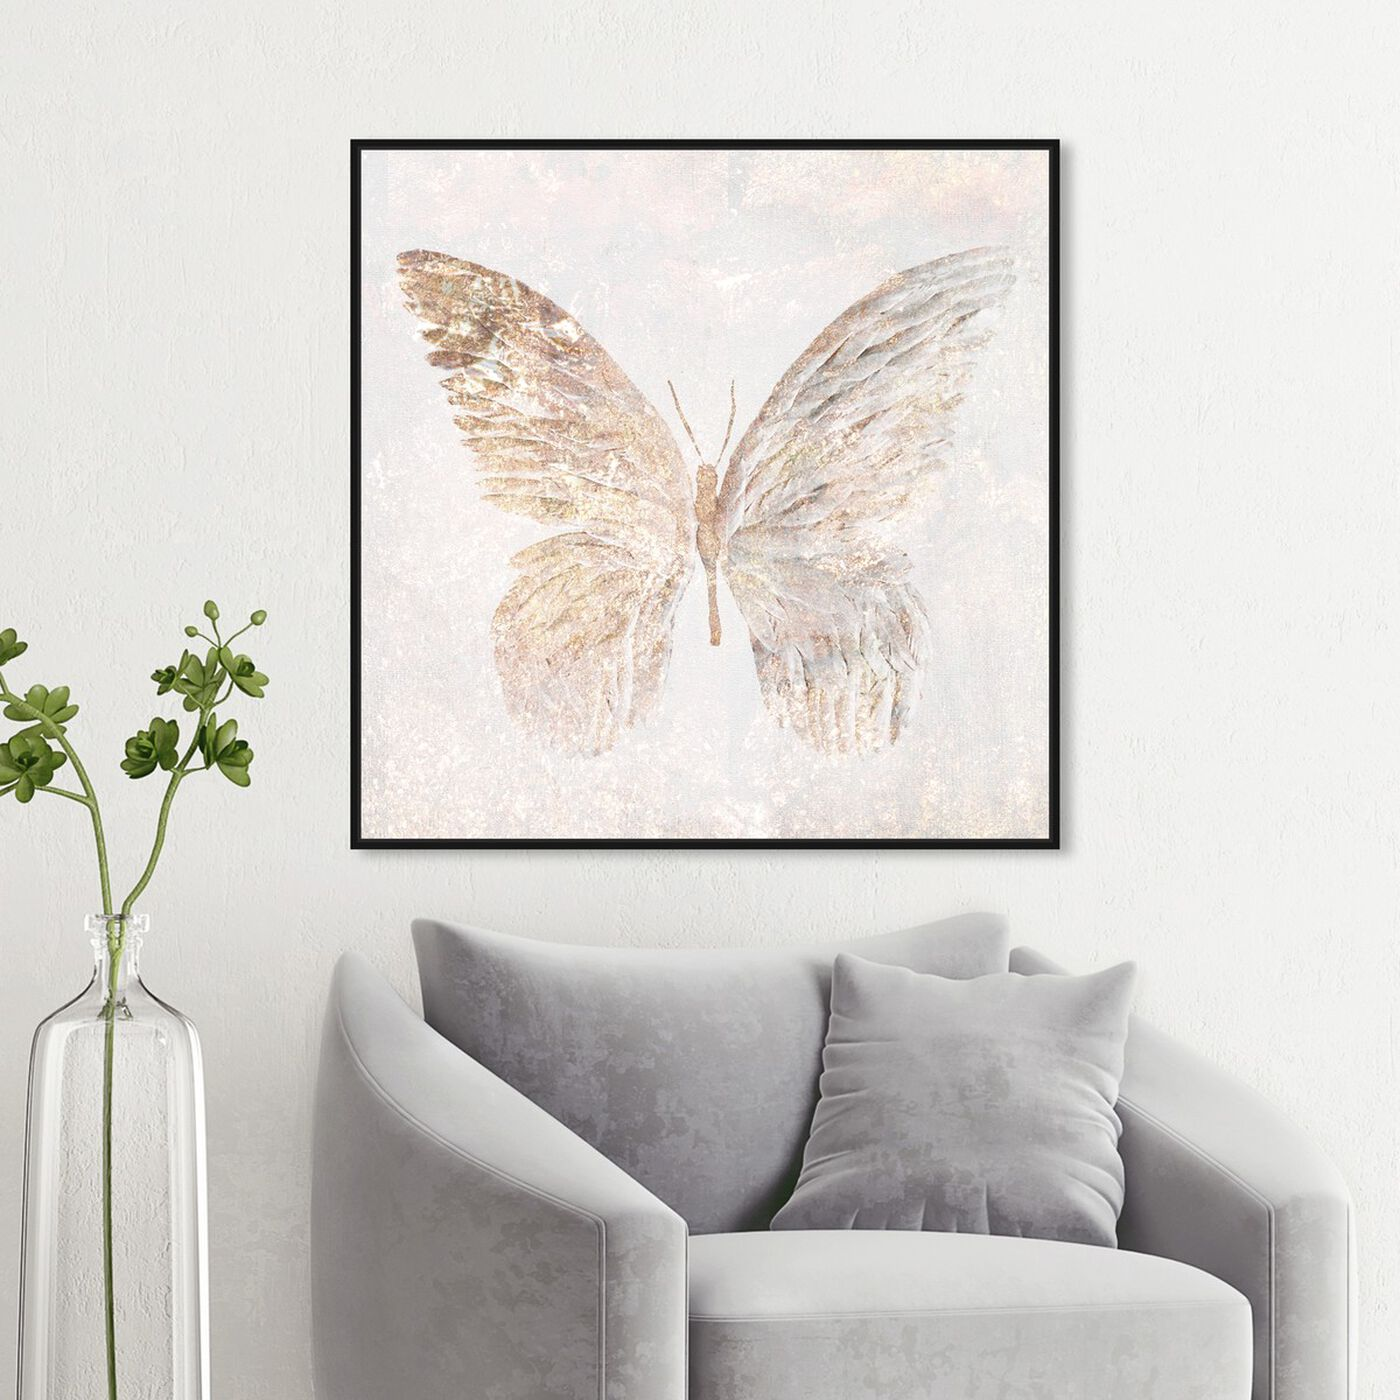 Hanging view of Golden Butterfly Glimmer featuring animals and insects art.